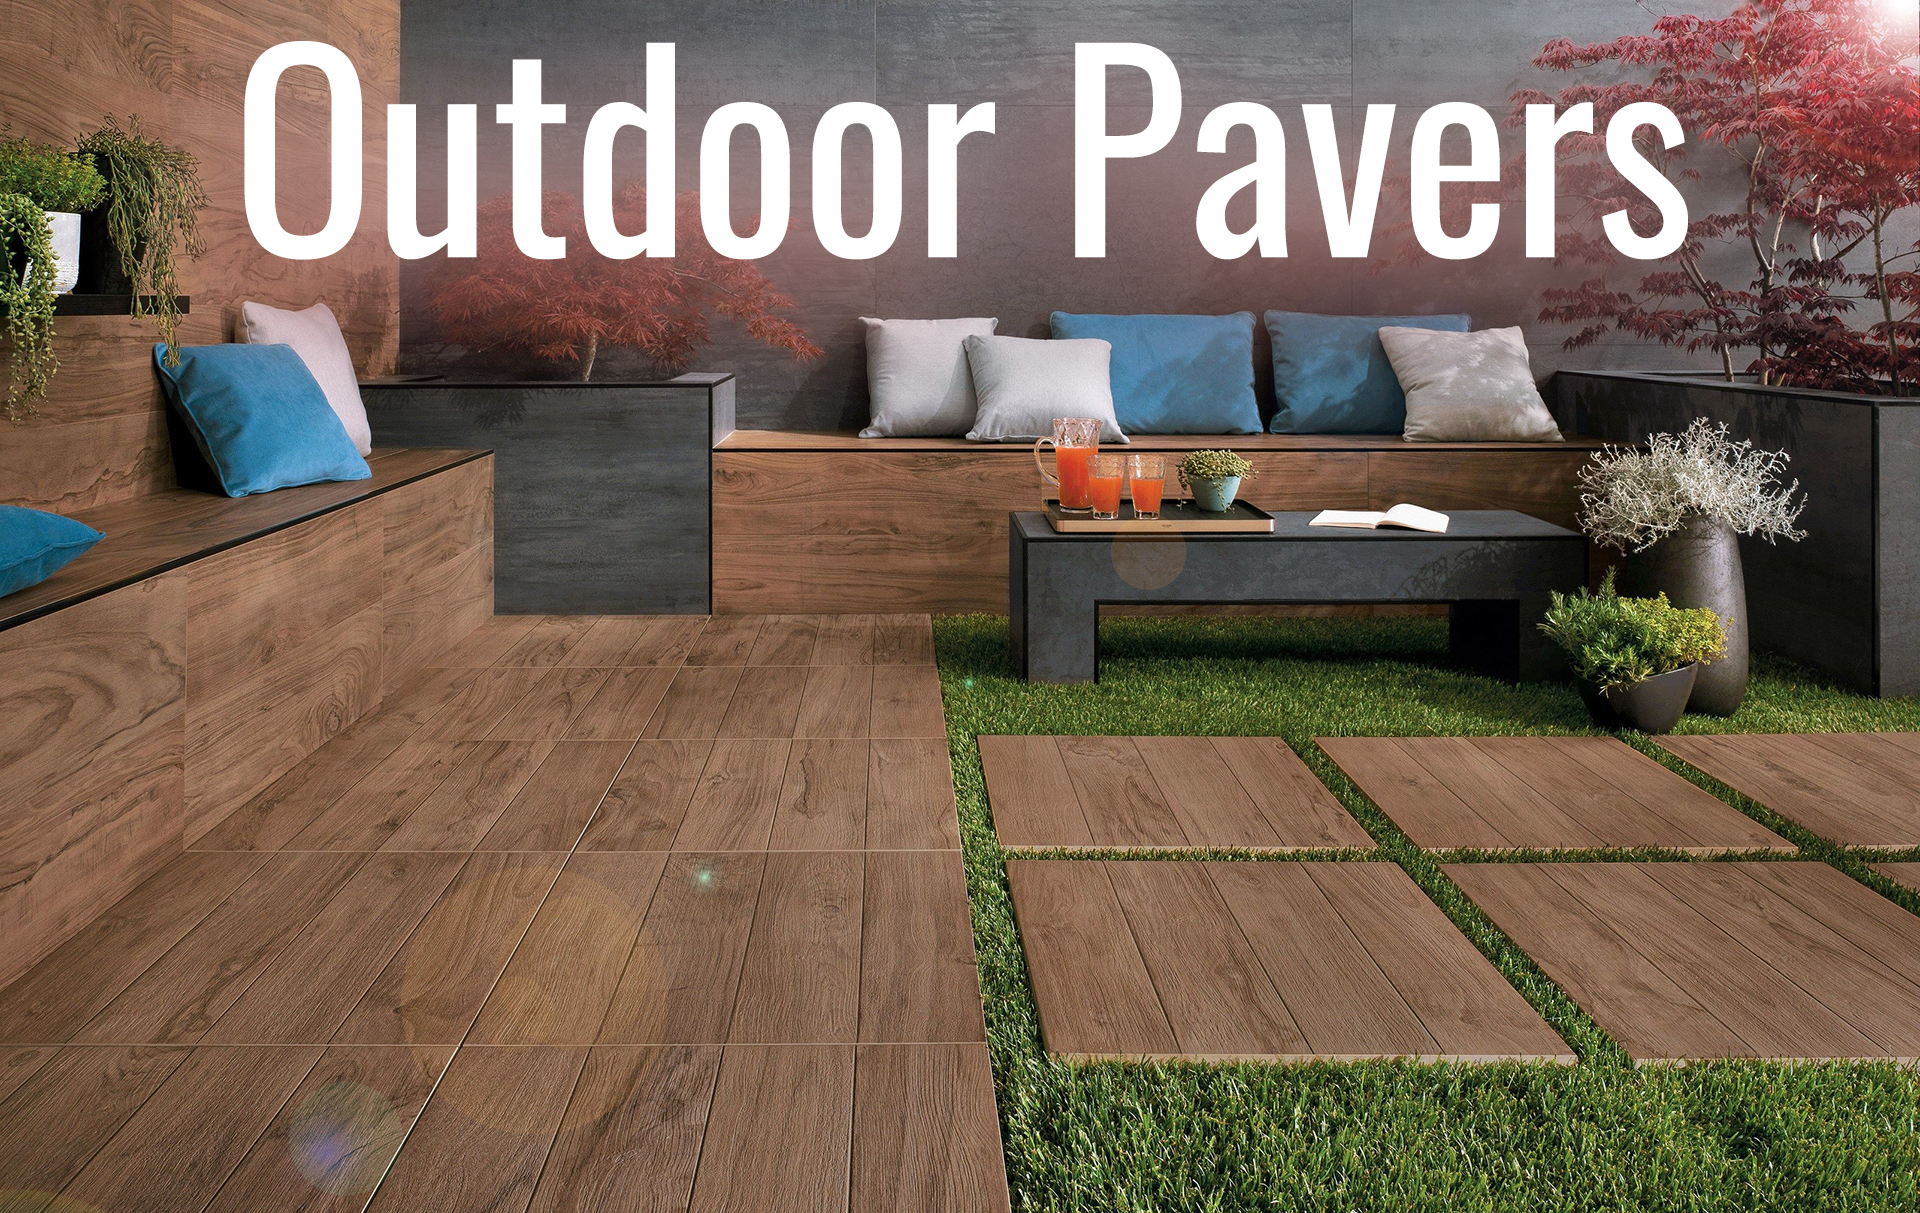 Shop By Type Outdoor Paver Tiles TilesDirect Store